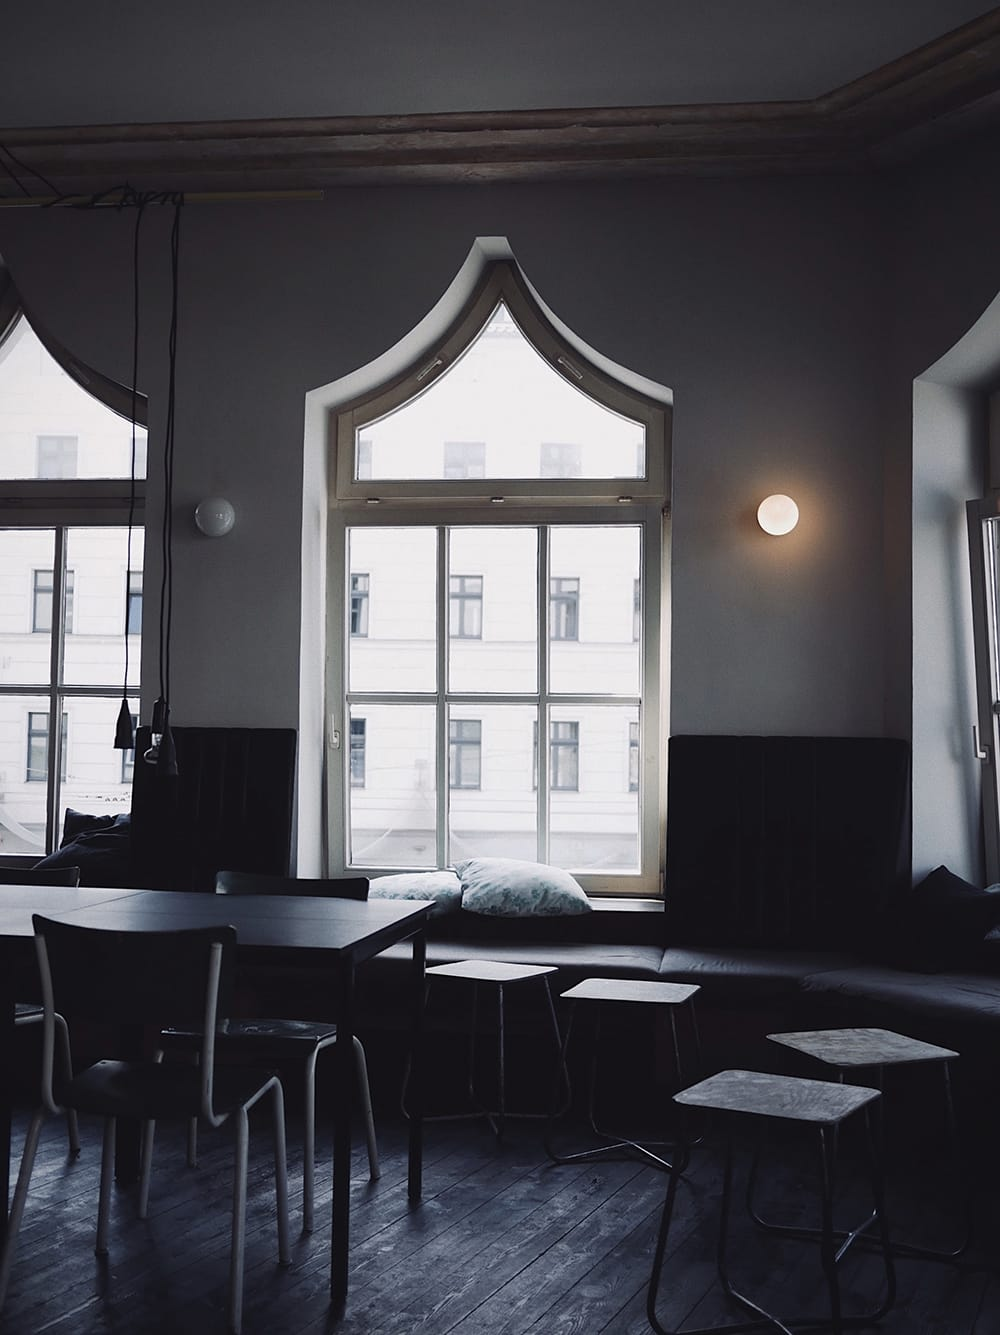 Empty interior of a cafe with big windows up to the ceiling and black furniture. Berlin